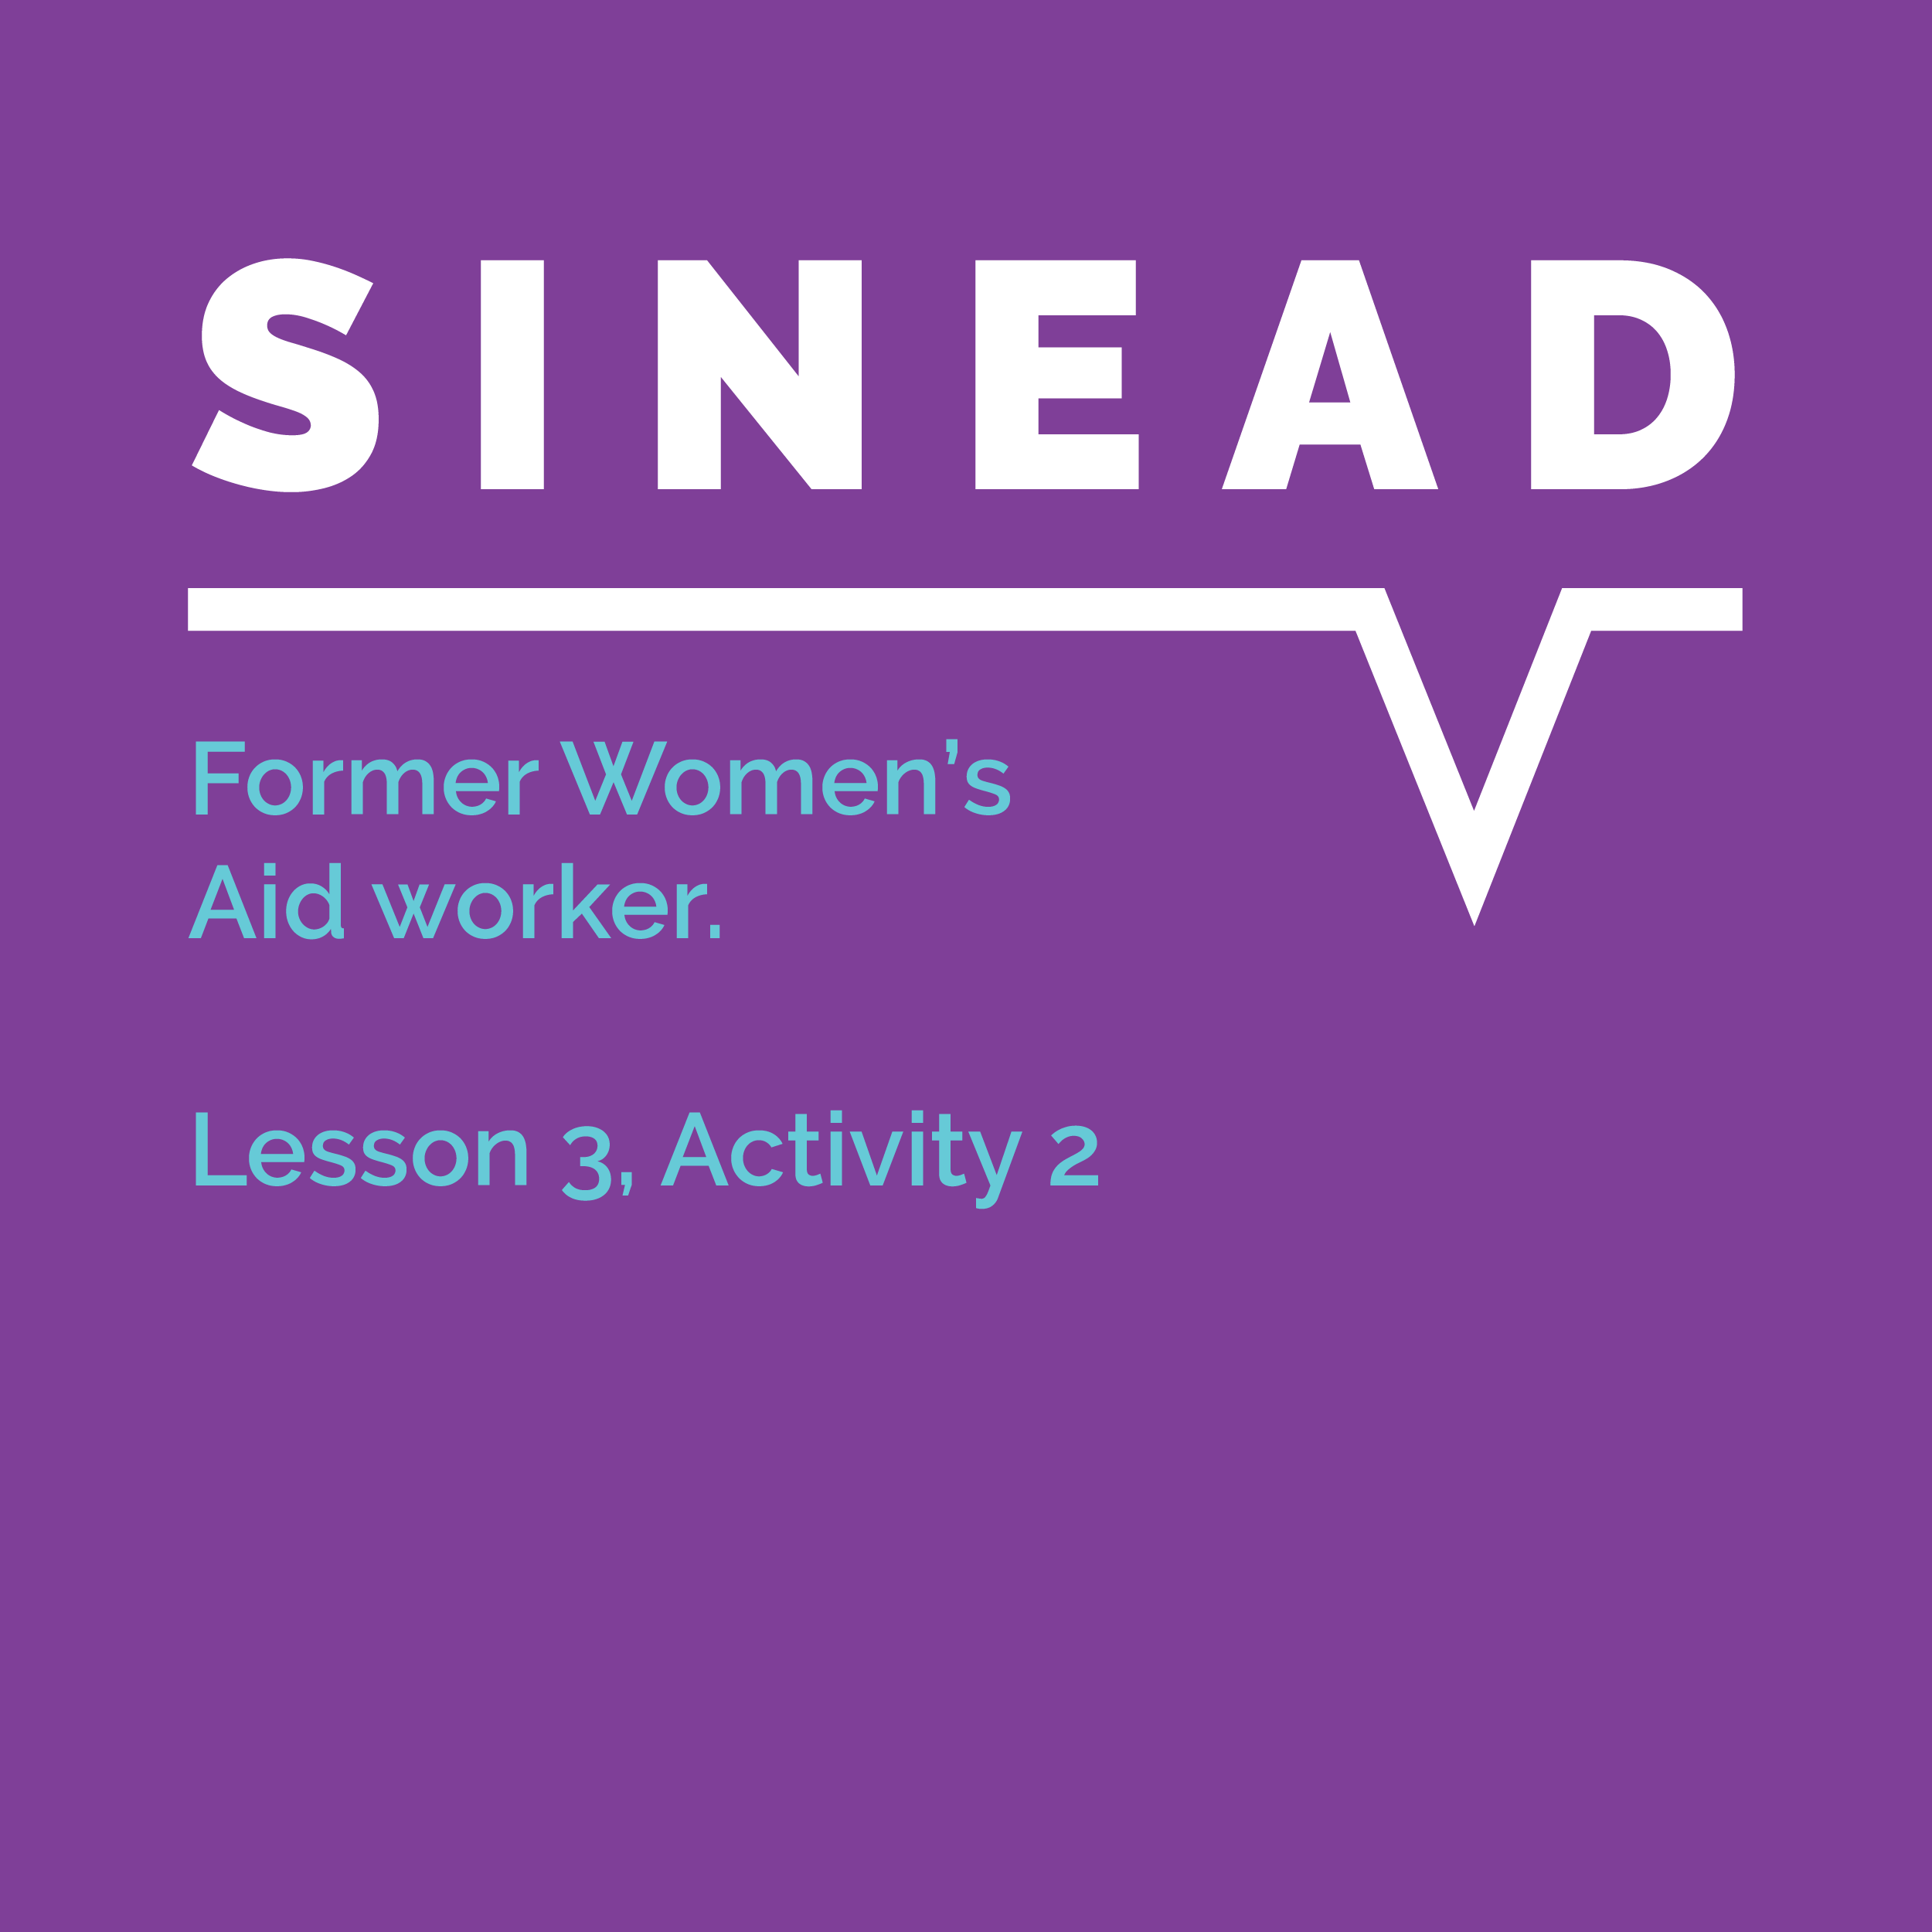 Speaking Out Learning Resource, Lesson 3, Activity 2: Sinead, former Women's Aid worker